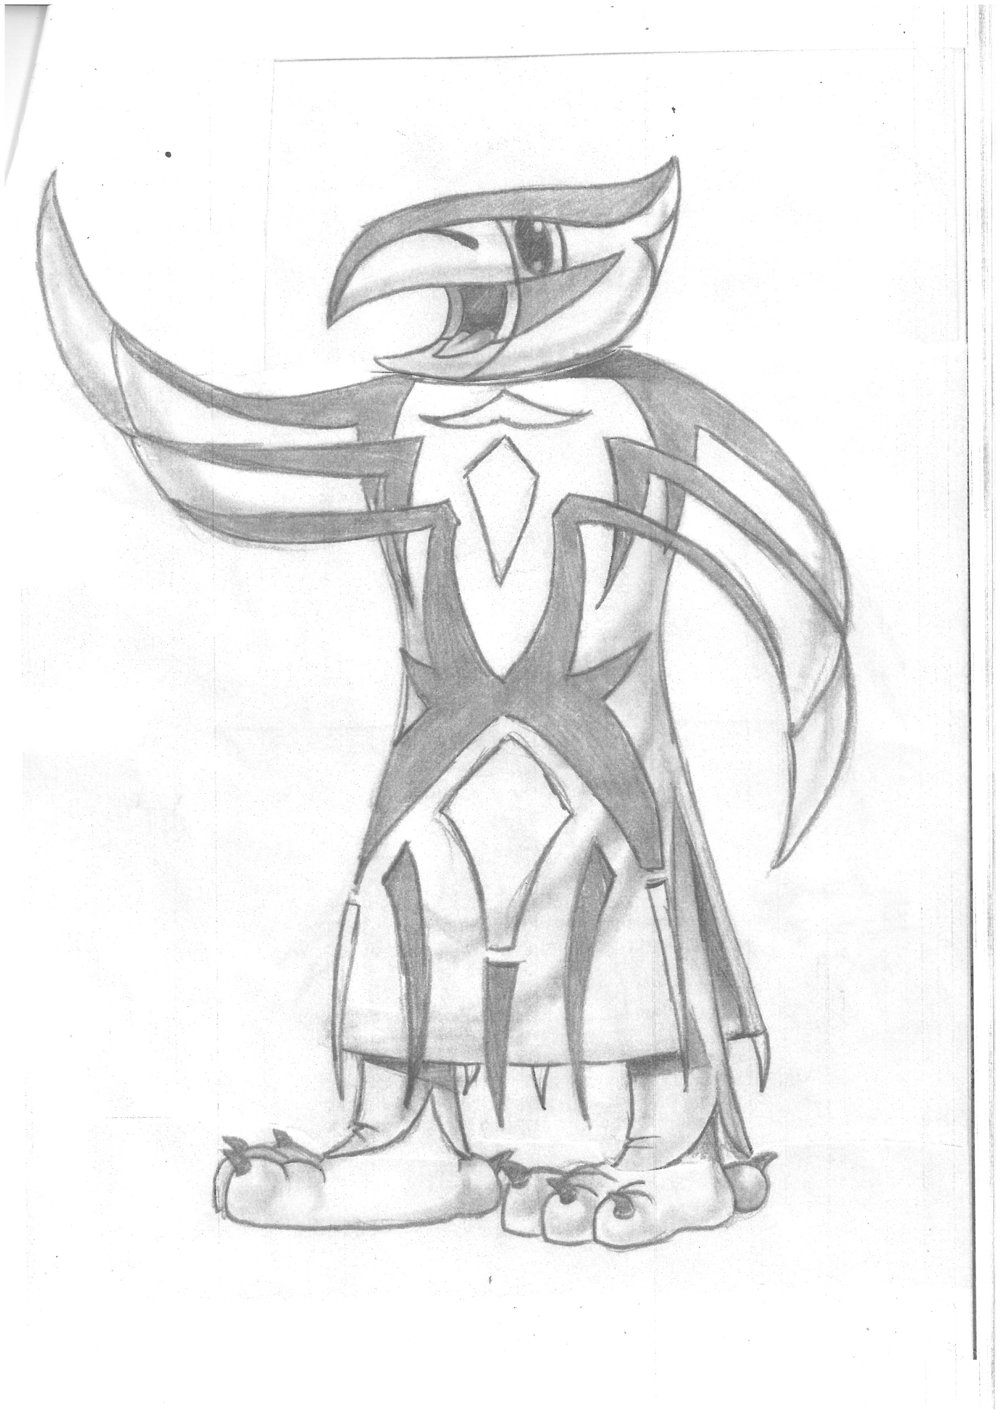 This early concept drawing is clearly leading to the Blaze that we're familiar with today. (image supplied)